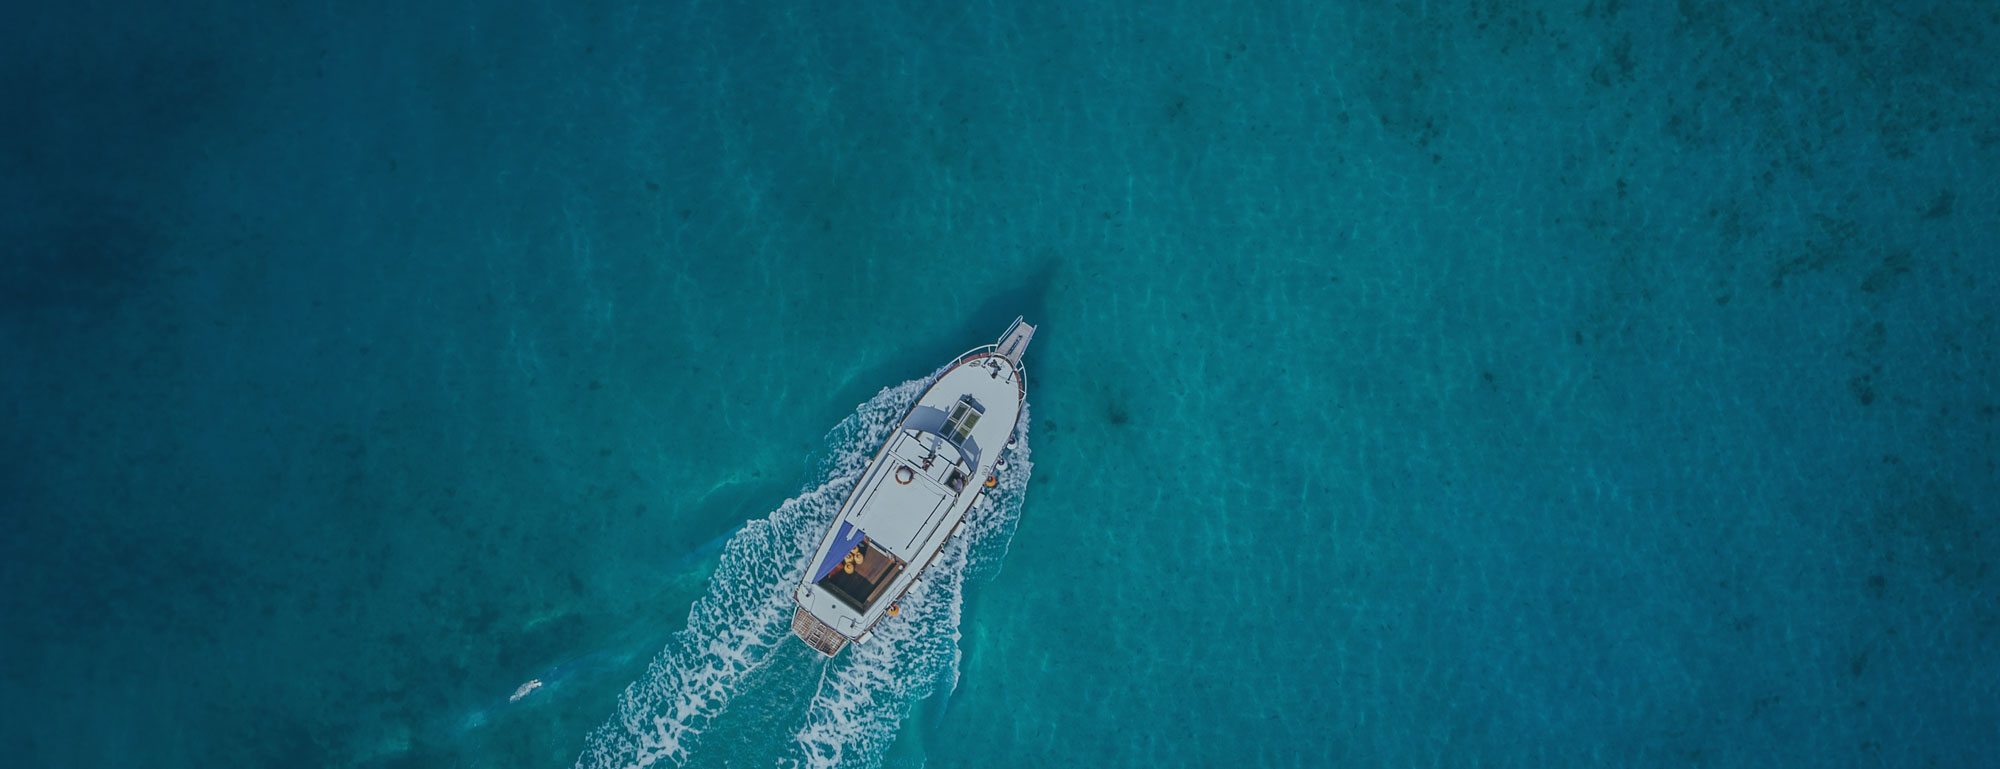 Marine Essentials boat on the ocean